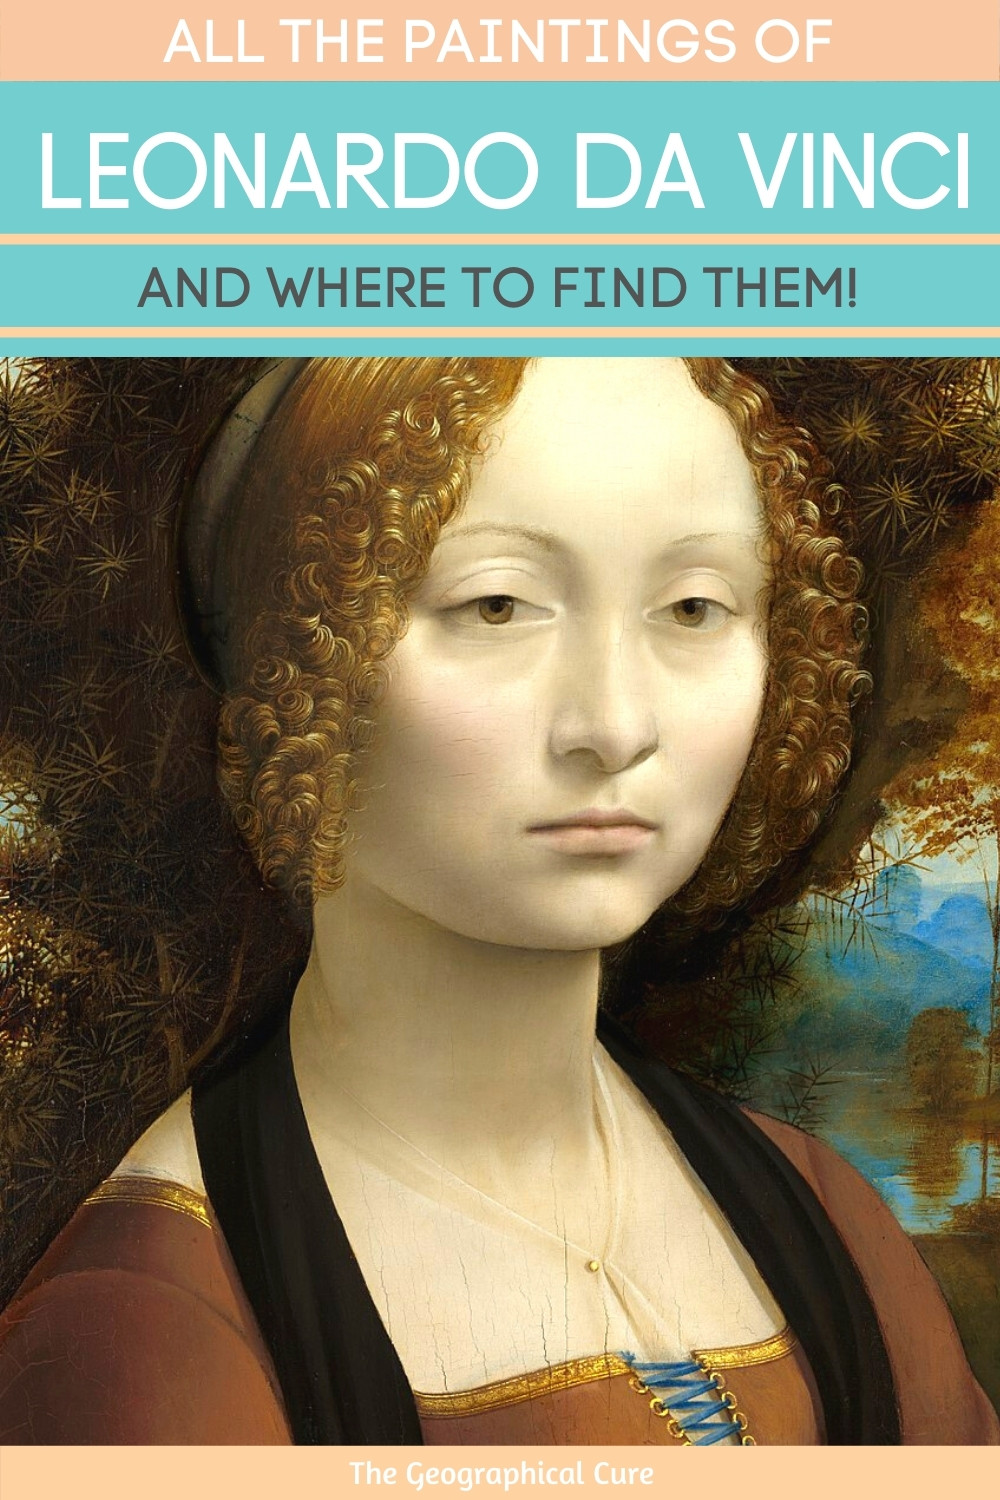 All of Leonardo da Vinci's Paintings and Where To Find Them